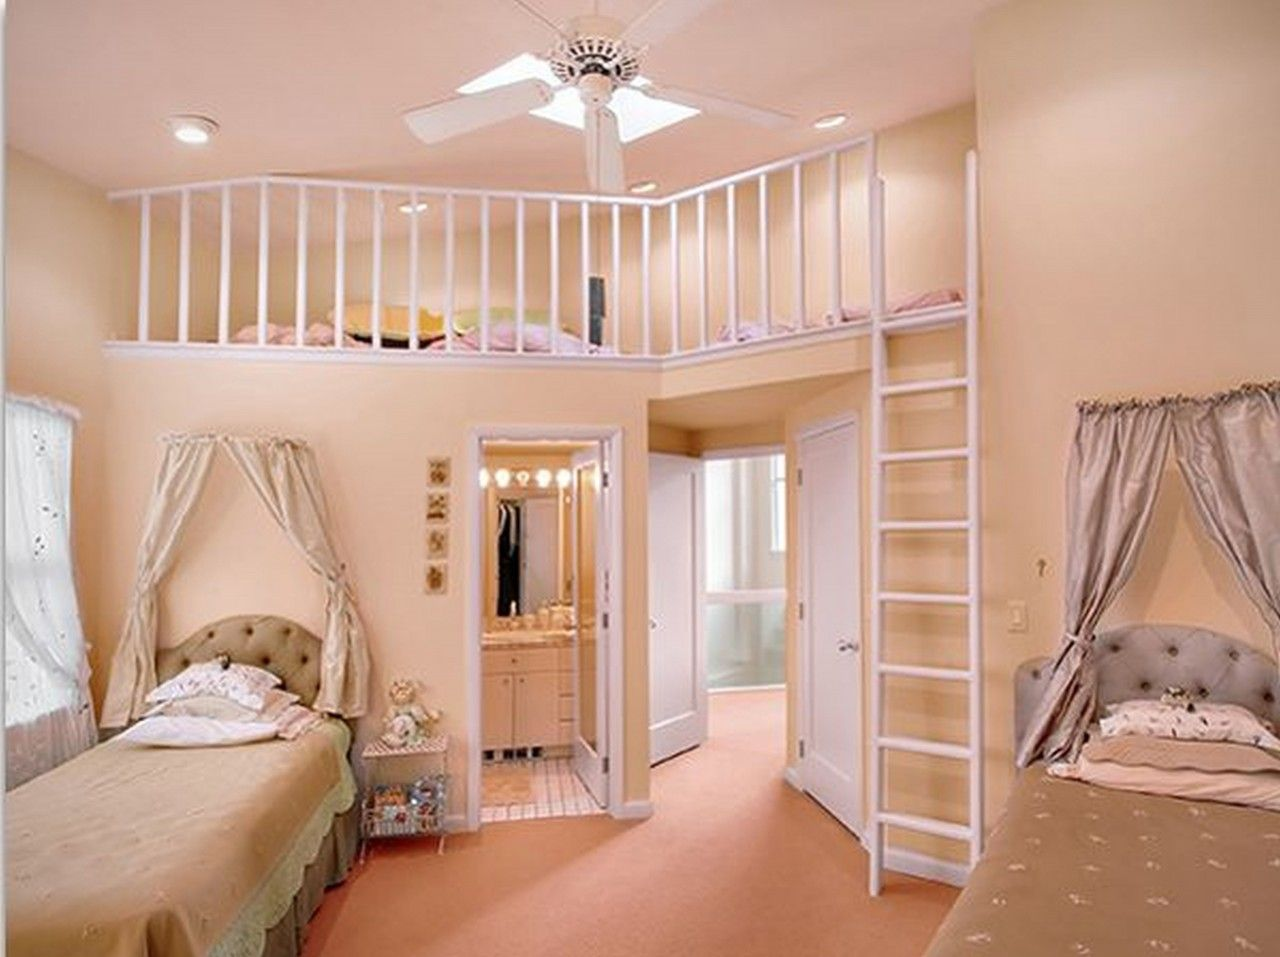 Luxury Bedrooms For Teenage Girls amusing cute bedroom ideas inspiration exquisite luxury bedrooms